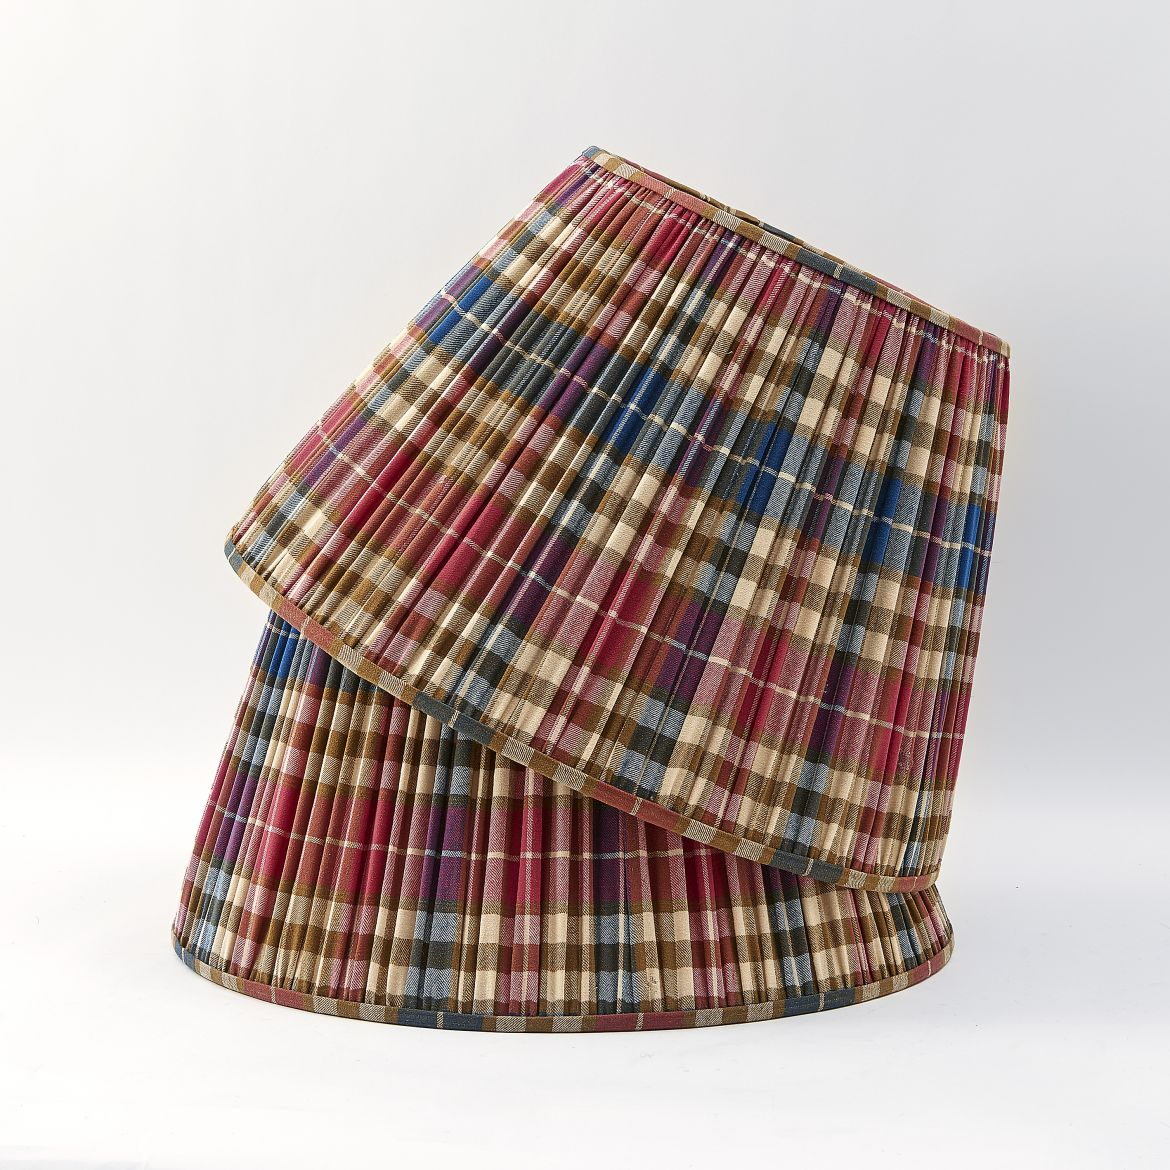 19th Century Scottish Wool Shades